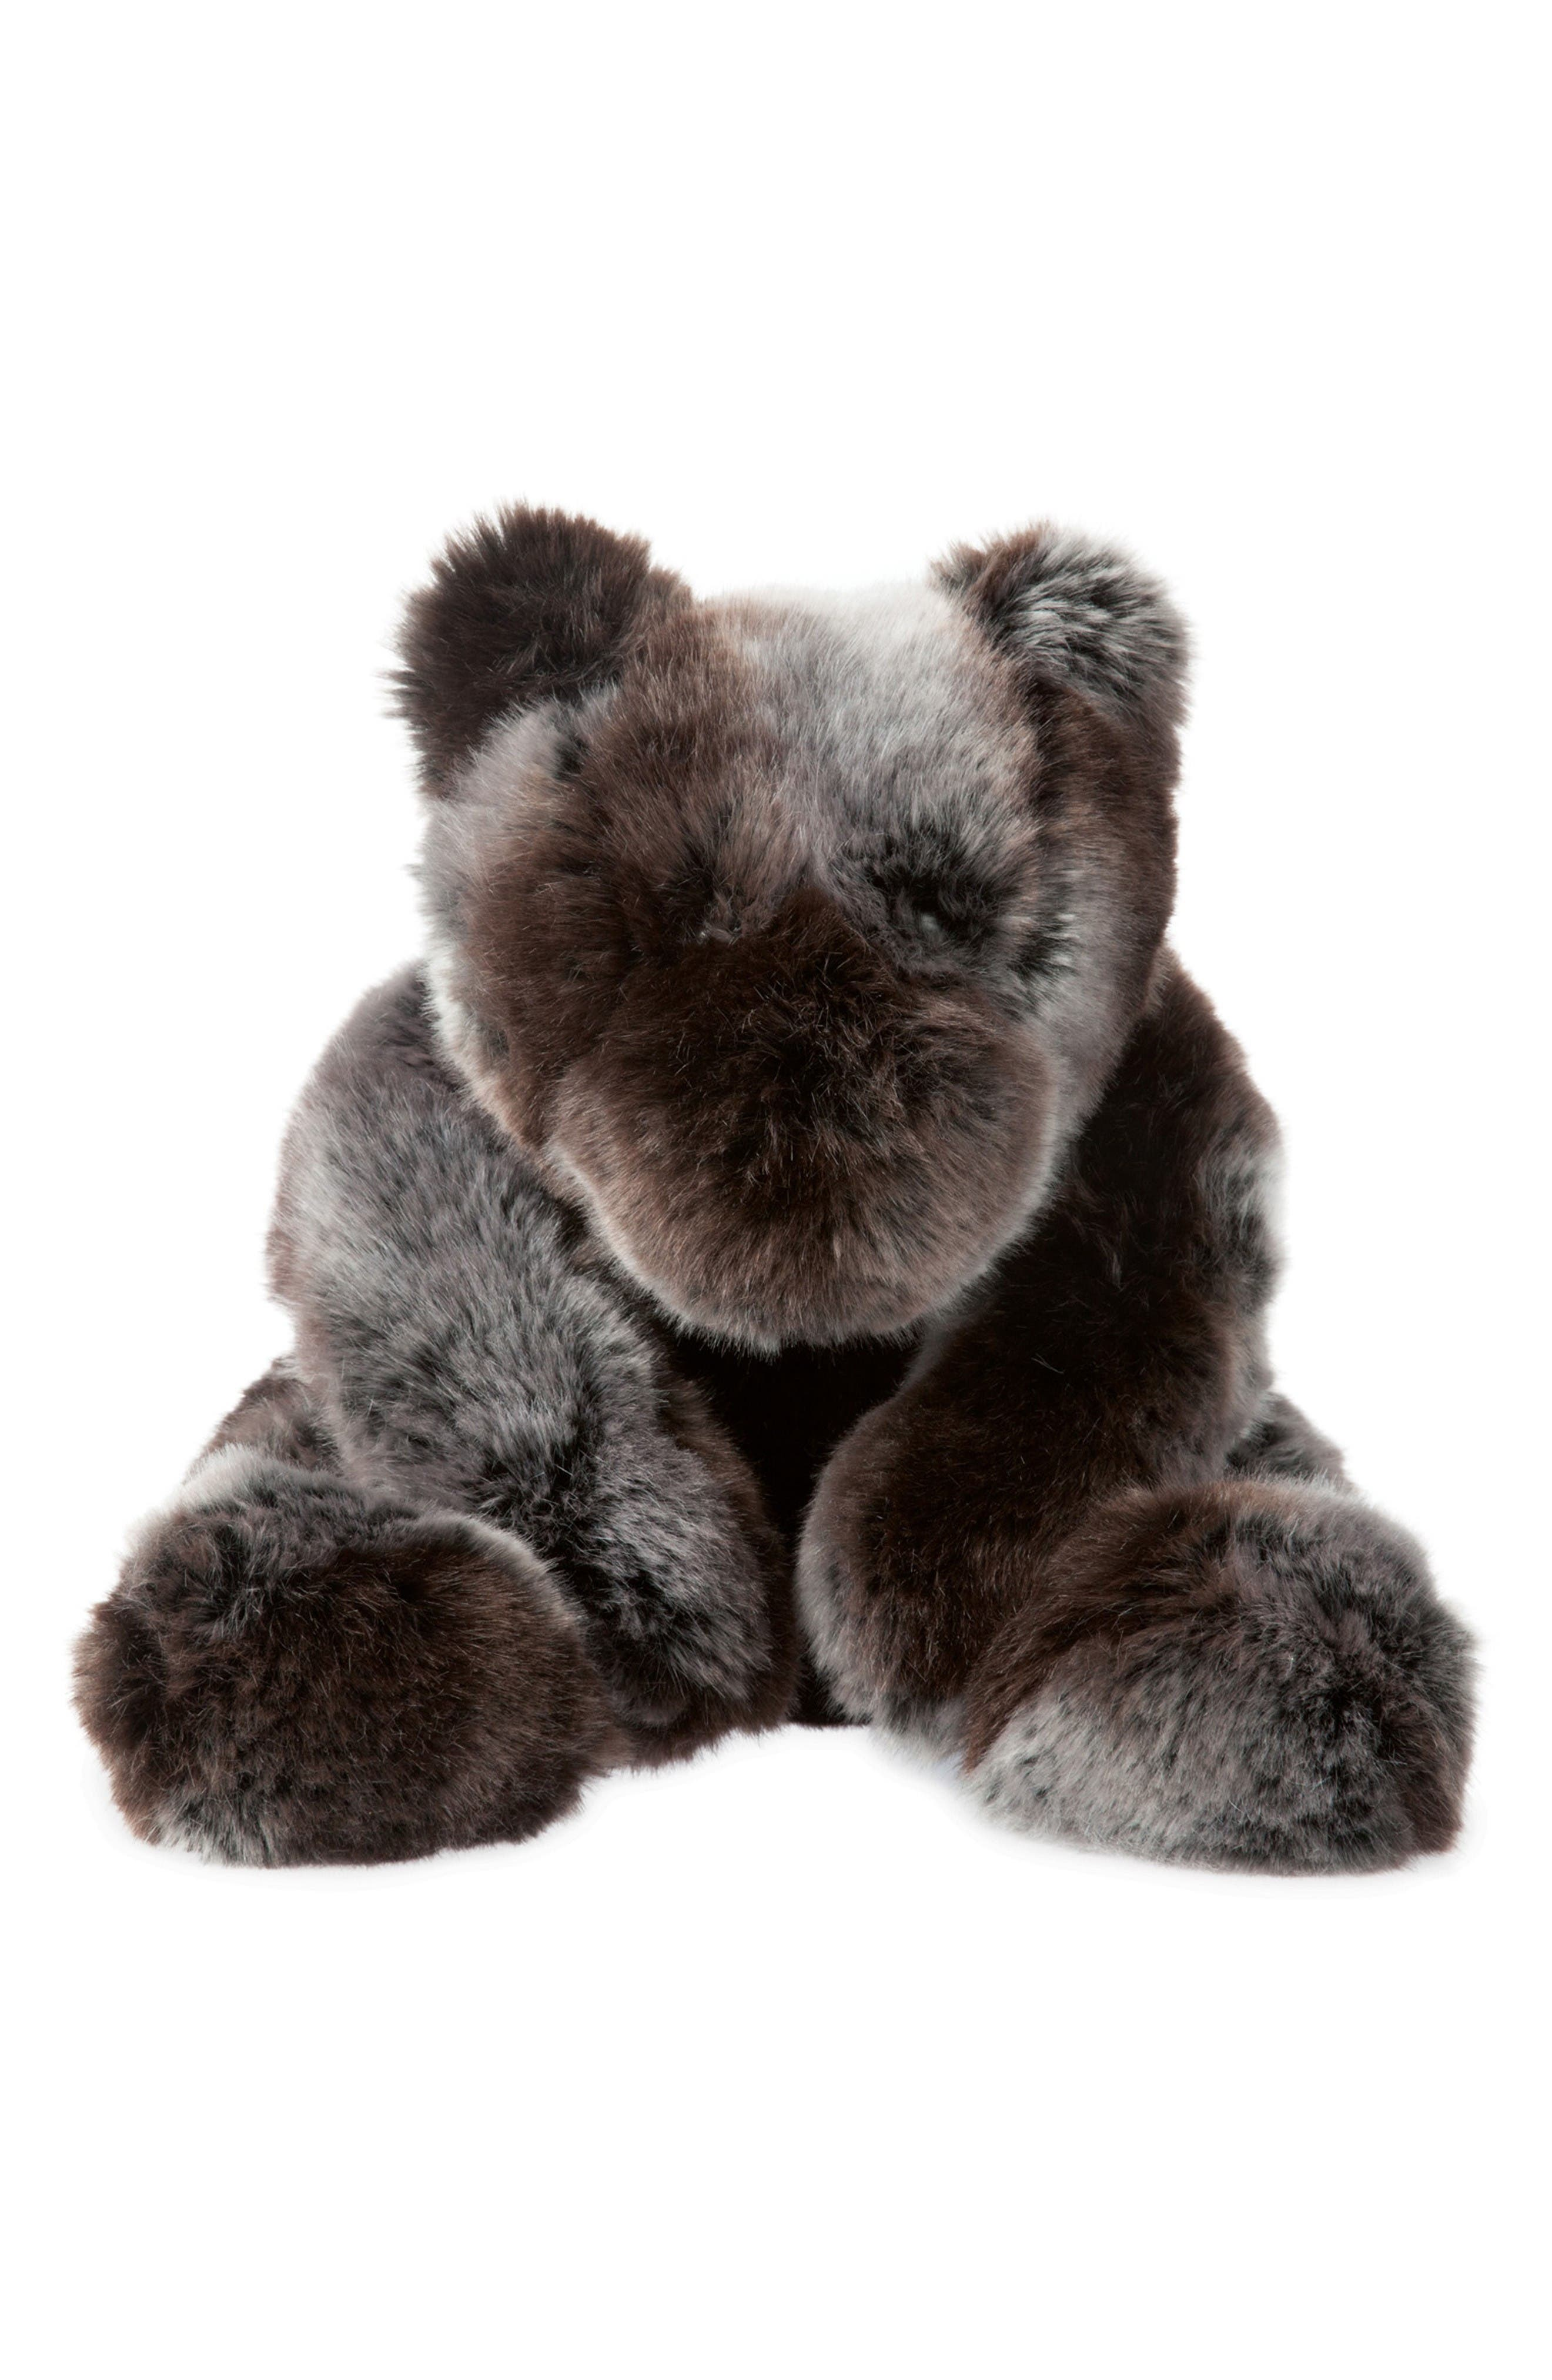 Luxe Sable Bear Stuffed Animal,                             Main thumbnail 1, color,                             Brown